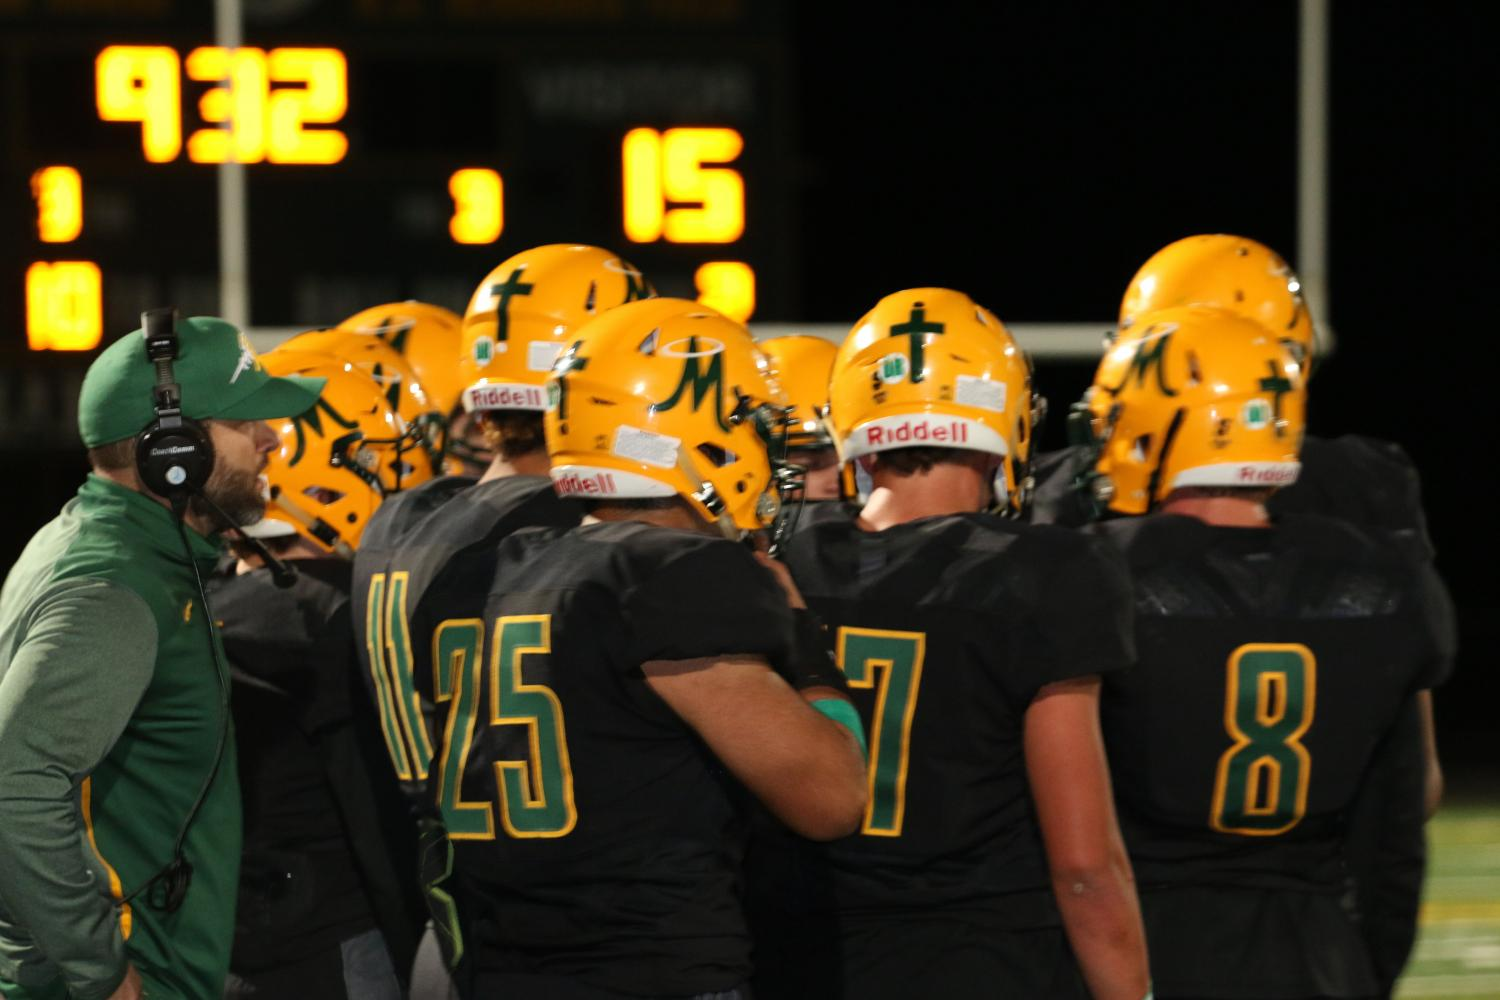 The Miner football team huddles during their September 22 game versus the Reed Raiders.  (Photo courtesy of Jackie Cavilia and the Bishop Manogue yearbook staff)